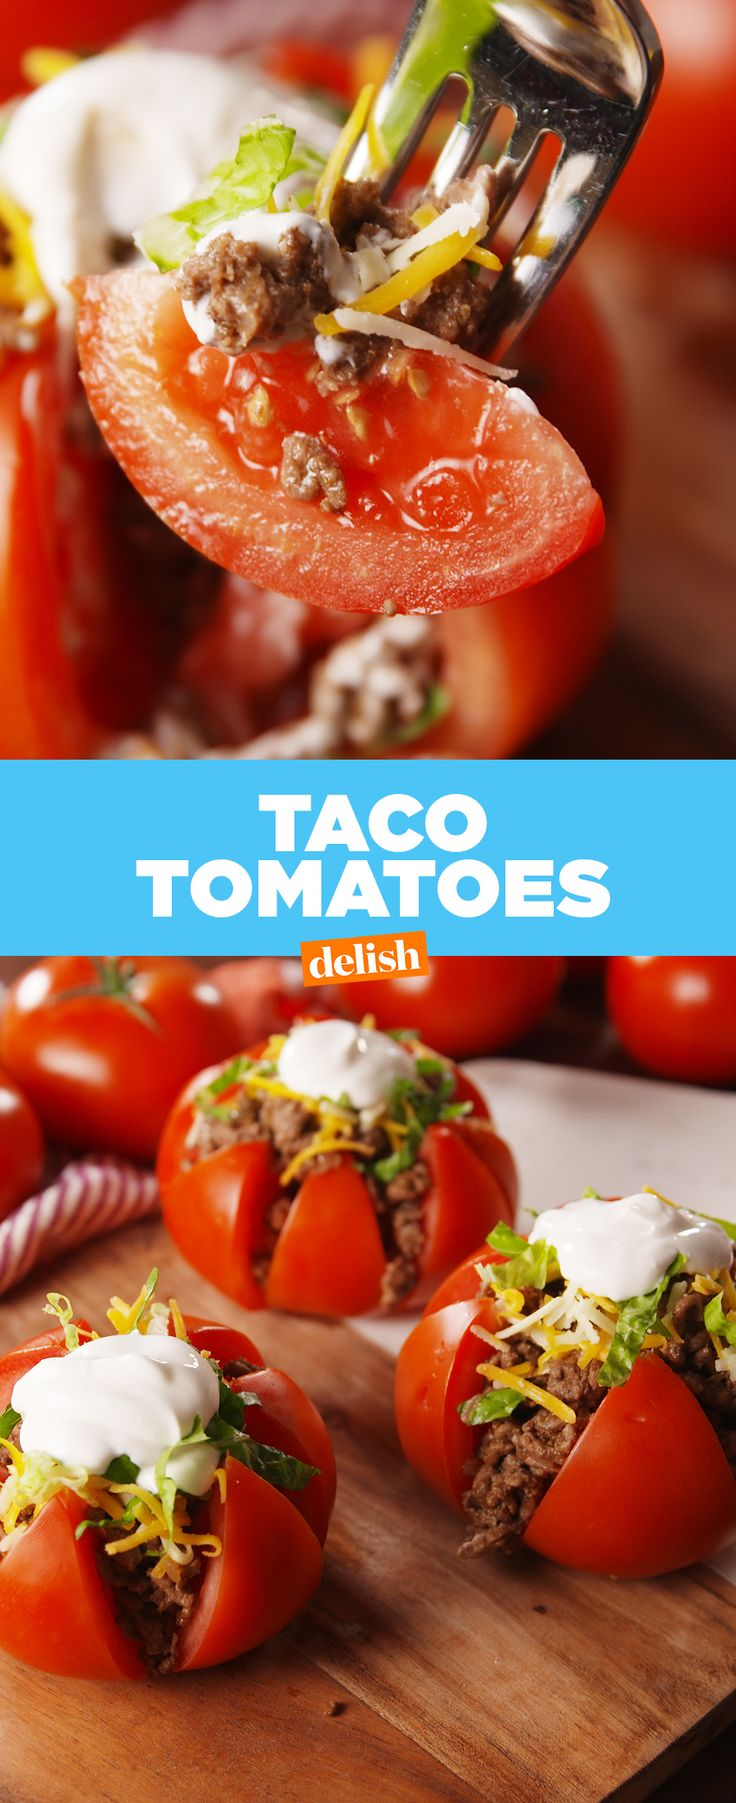 Taco Tomatoes make cutting carbs so easy. Get the recipe at Delish.com.